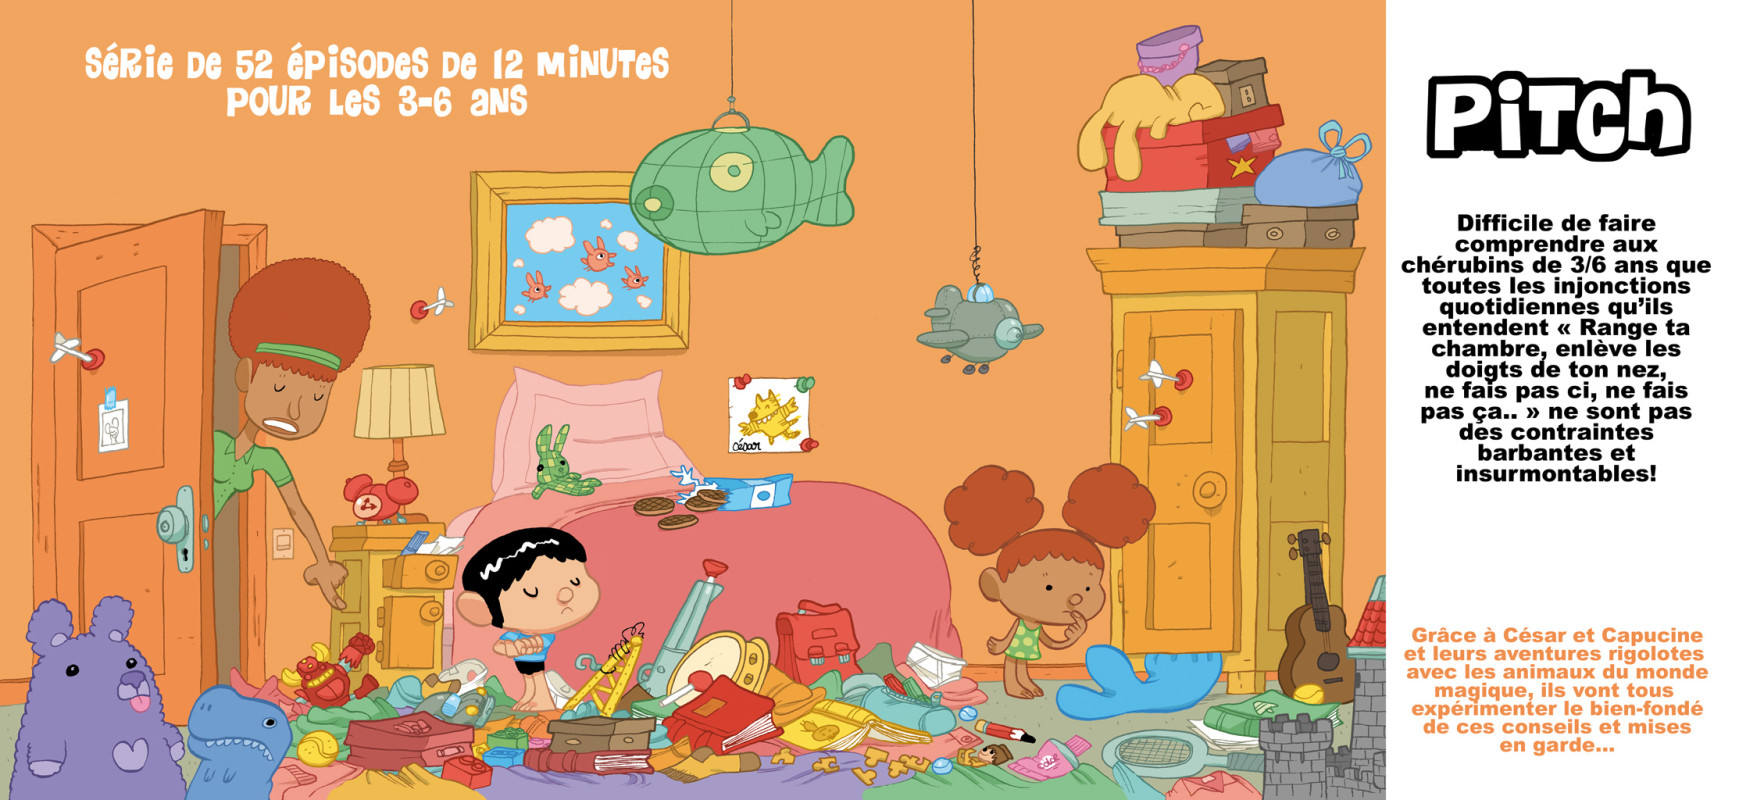 emejing bordel chambre dessin photos. Black Bedroom Furniture Sets. Home Design Ideas